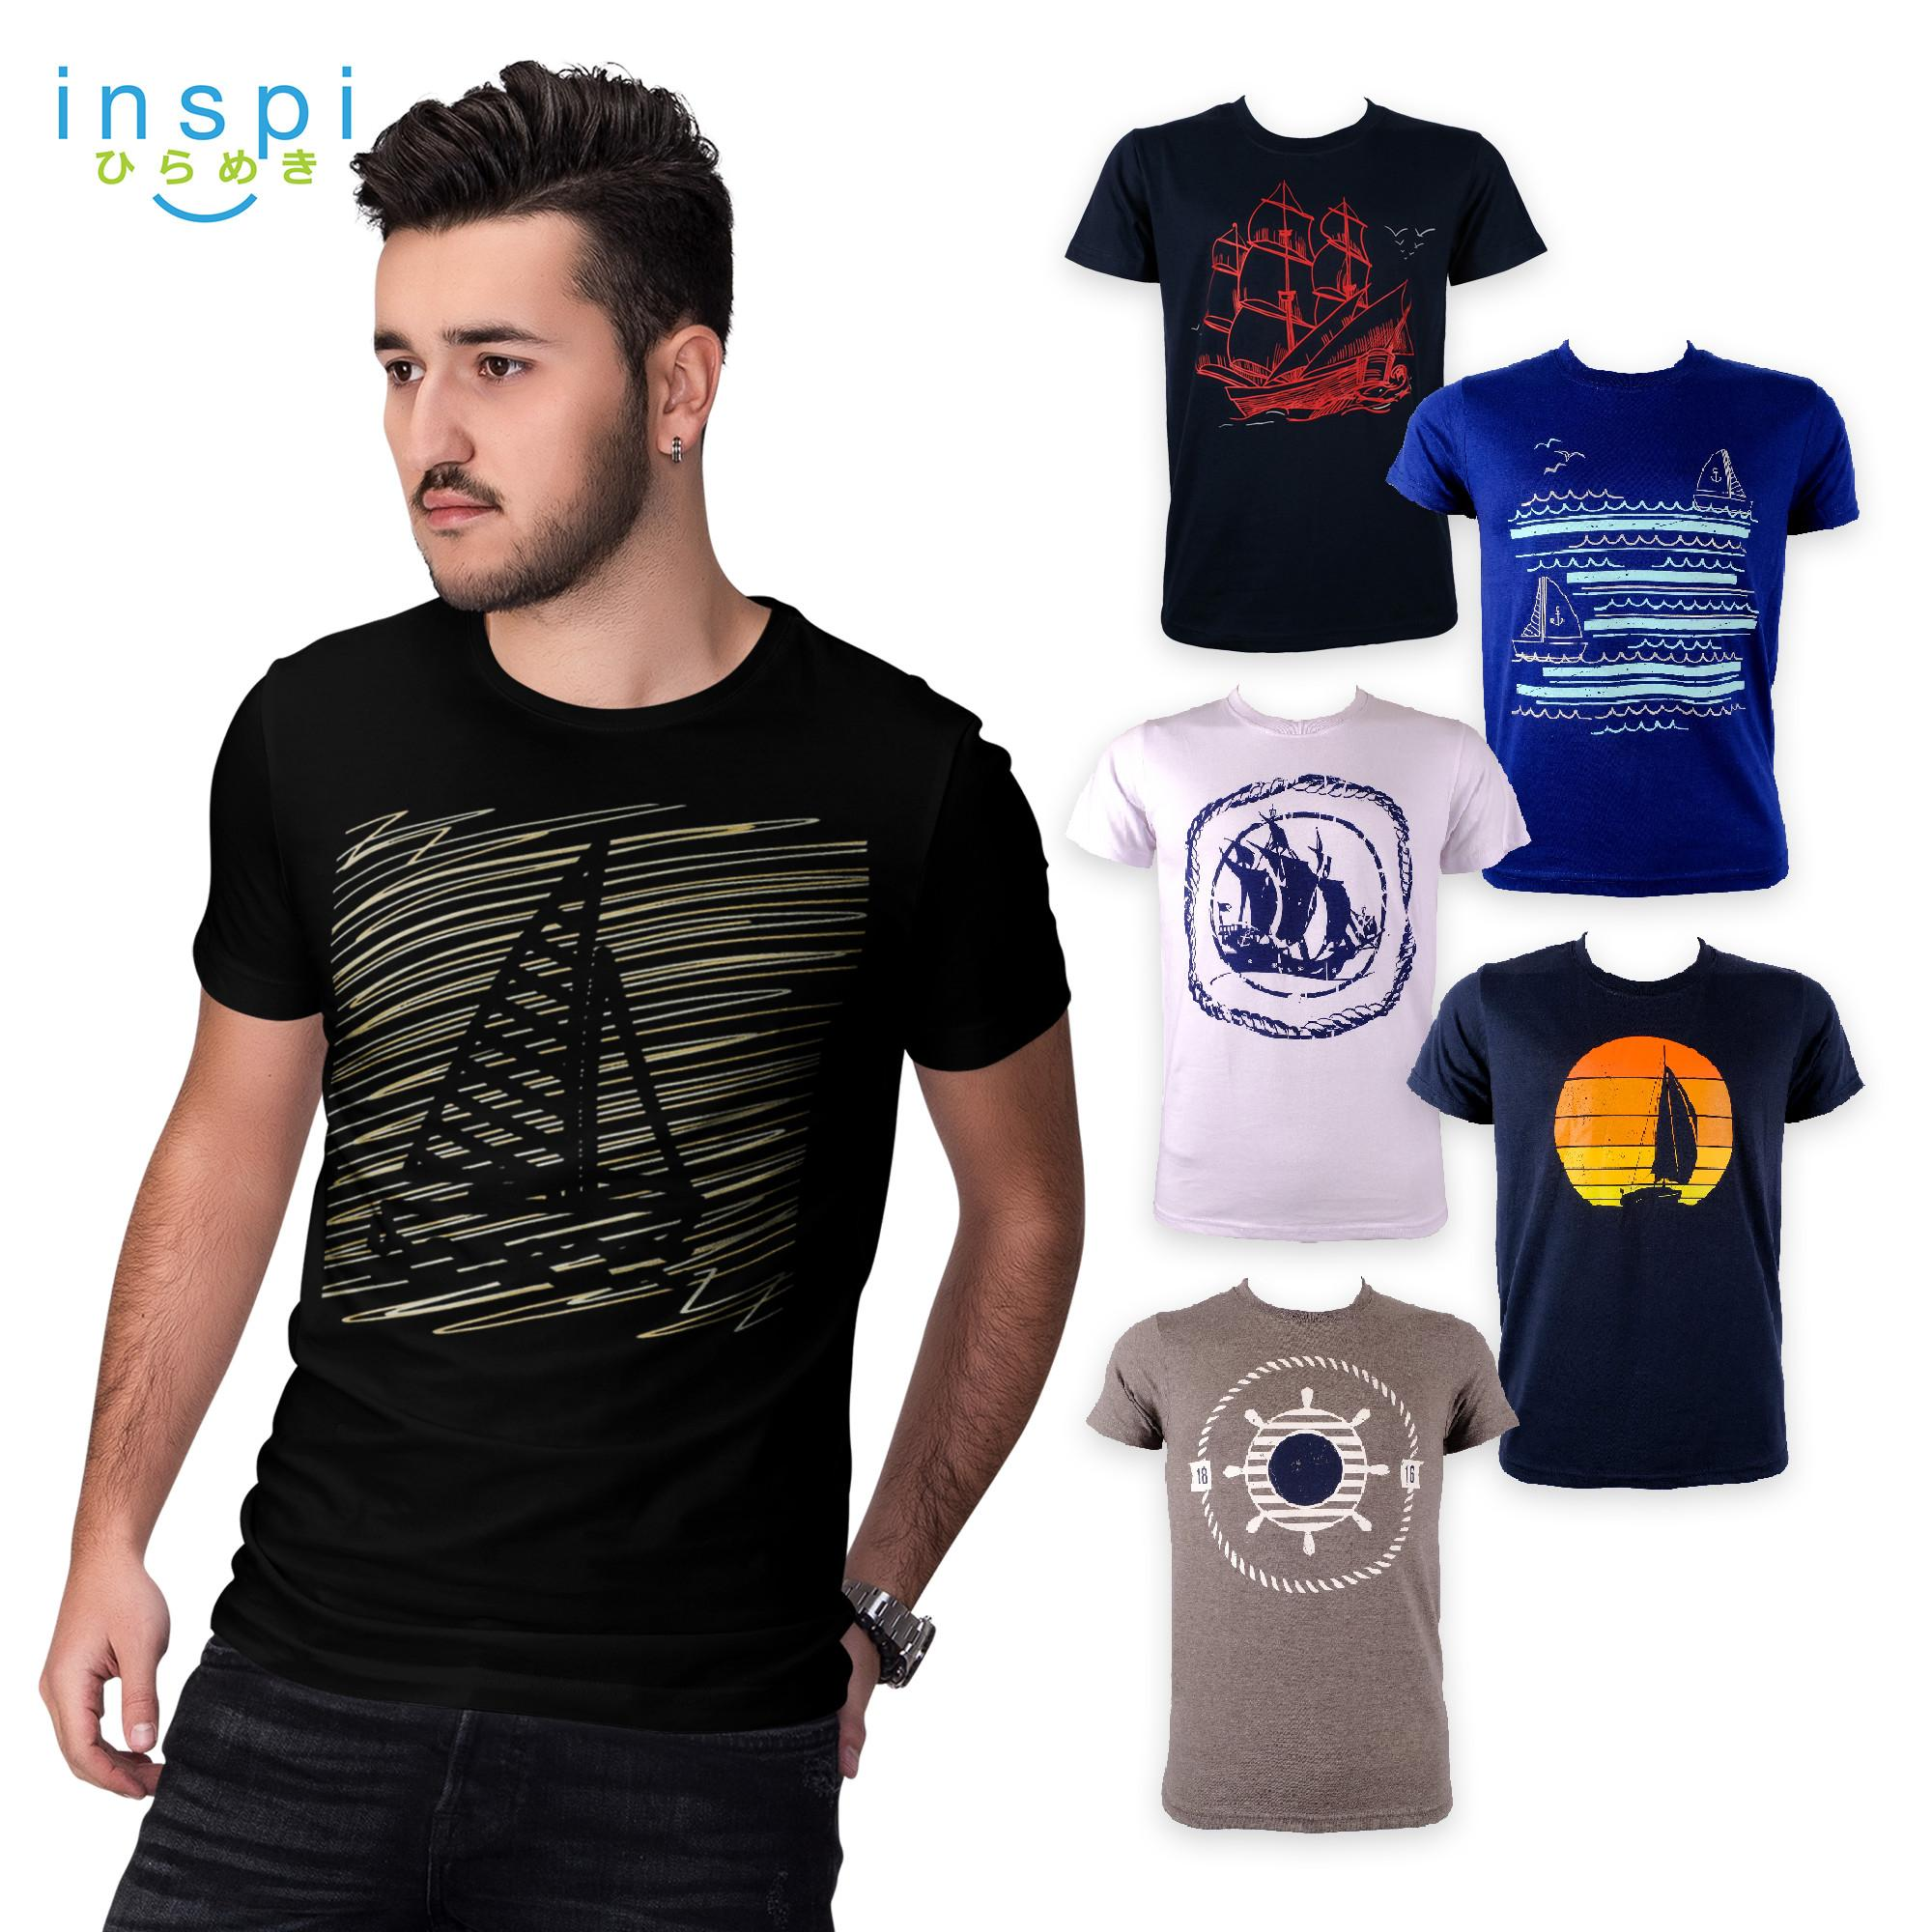 Inspi Tees Sailing Collection Tshirt Printed Graphic Tee Mens T Shirt Shirts For Men Tshirts Sale By Inspi.